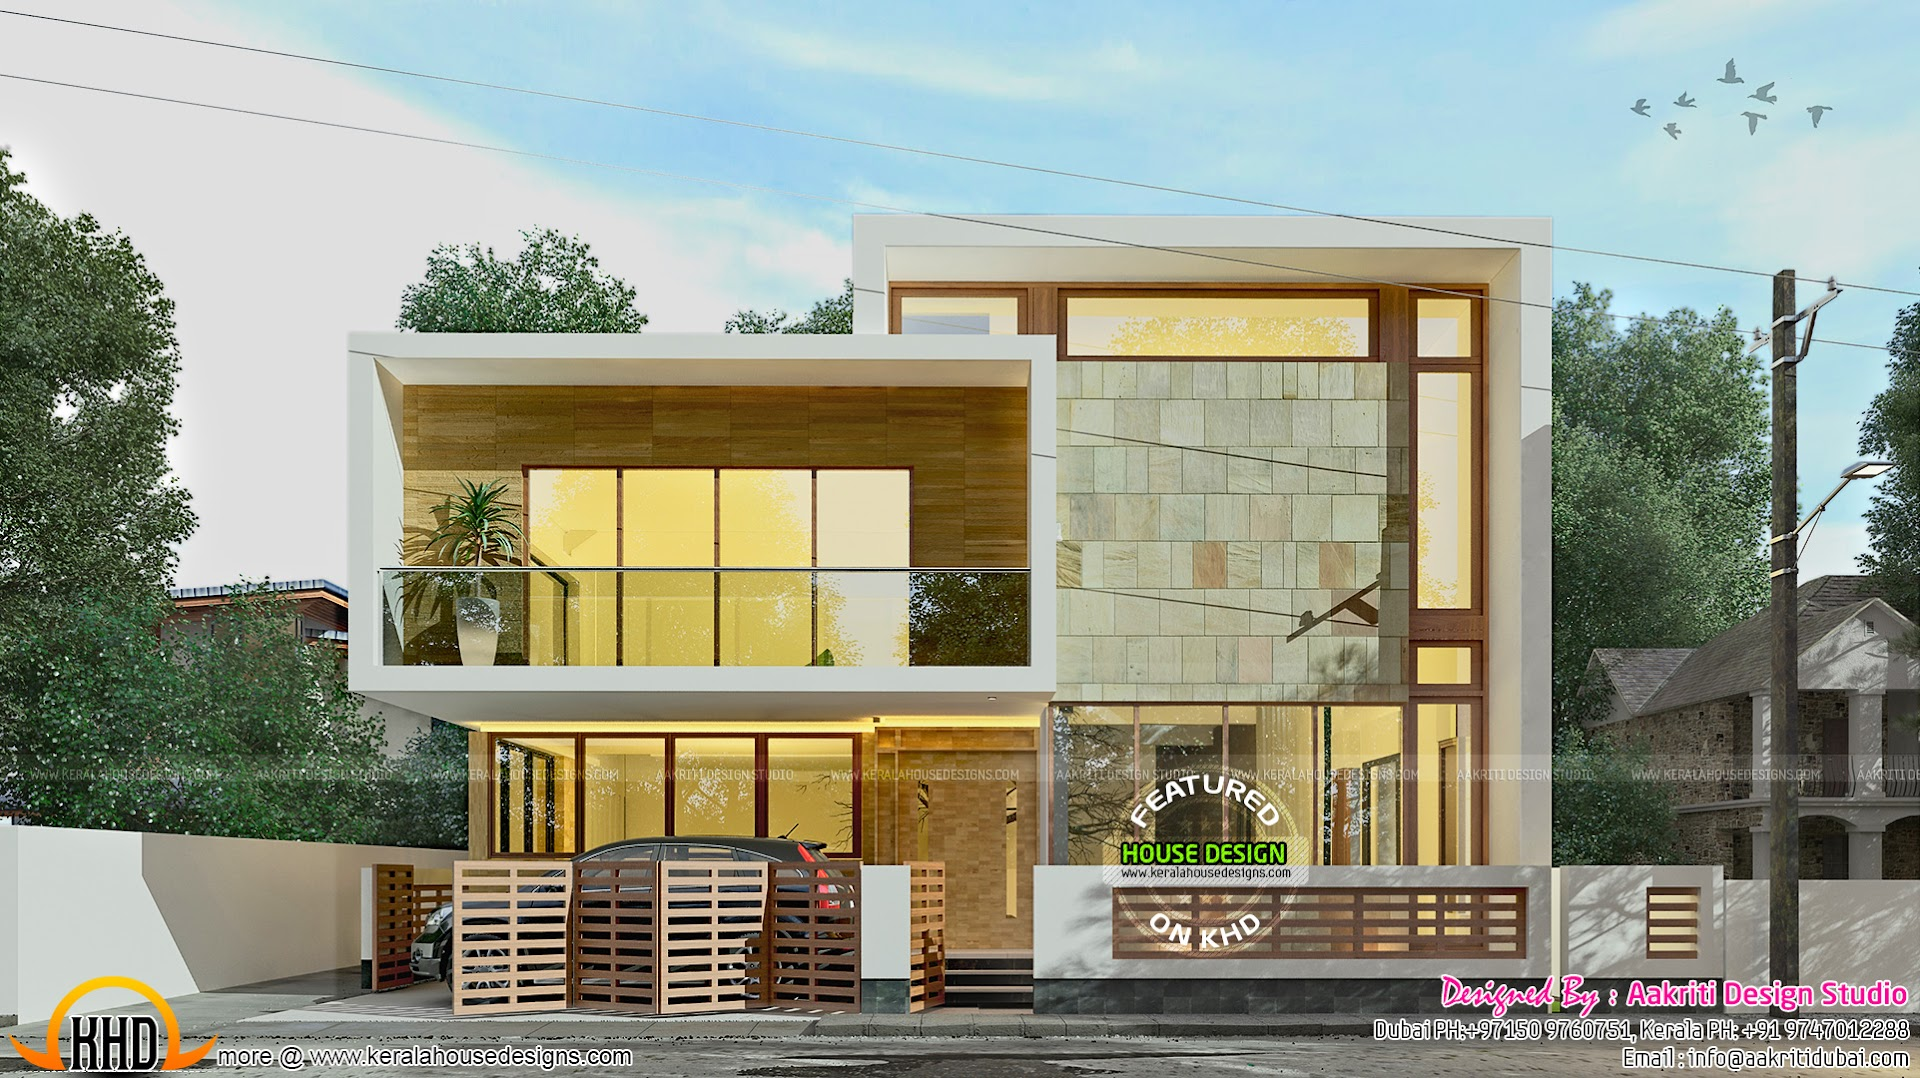 Contemporary villa with mezzanine courtyard kerala home for House plans with mezzanine floor